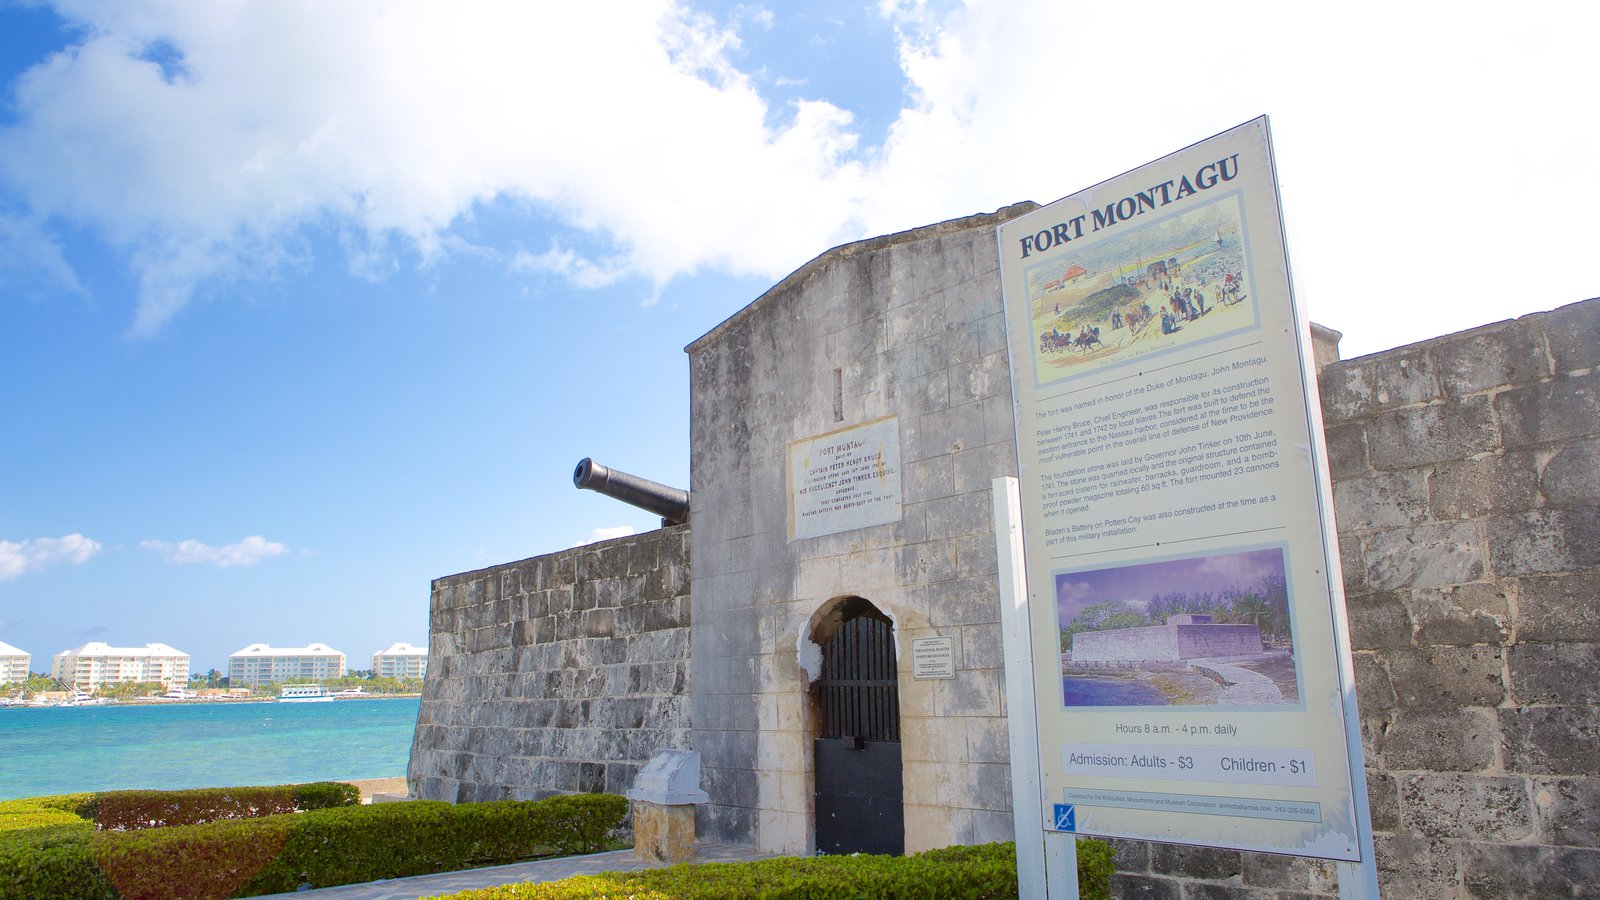 Fort Montagu Nassau, Historical Pictures: View Images of Fort Montagu